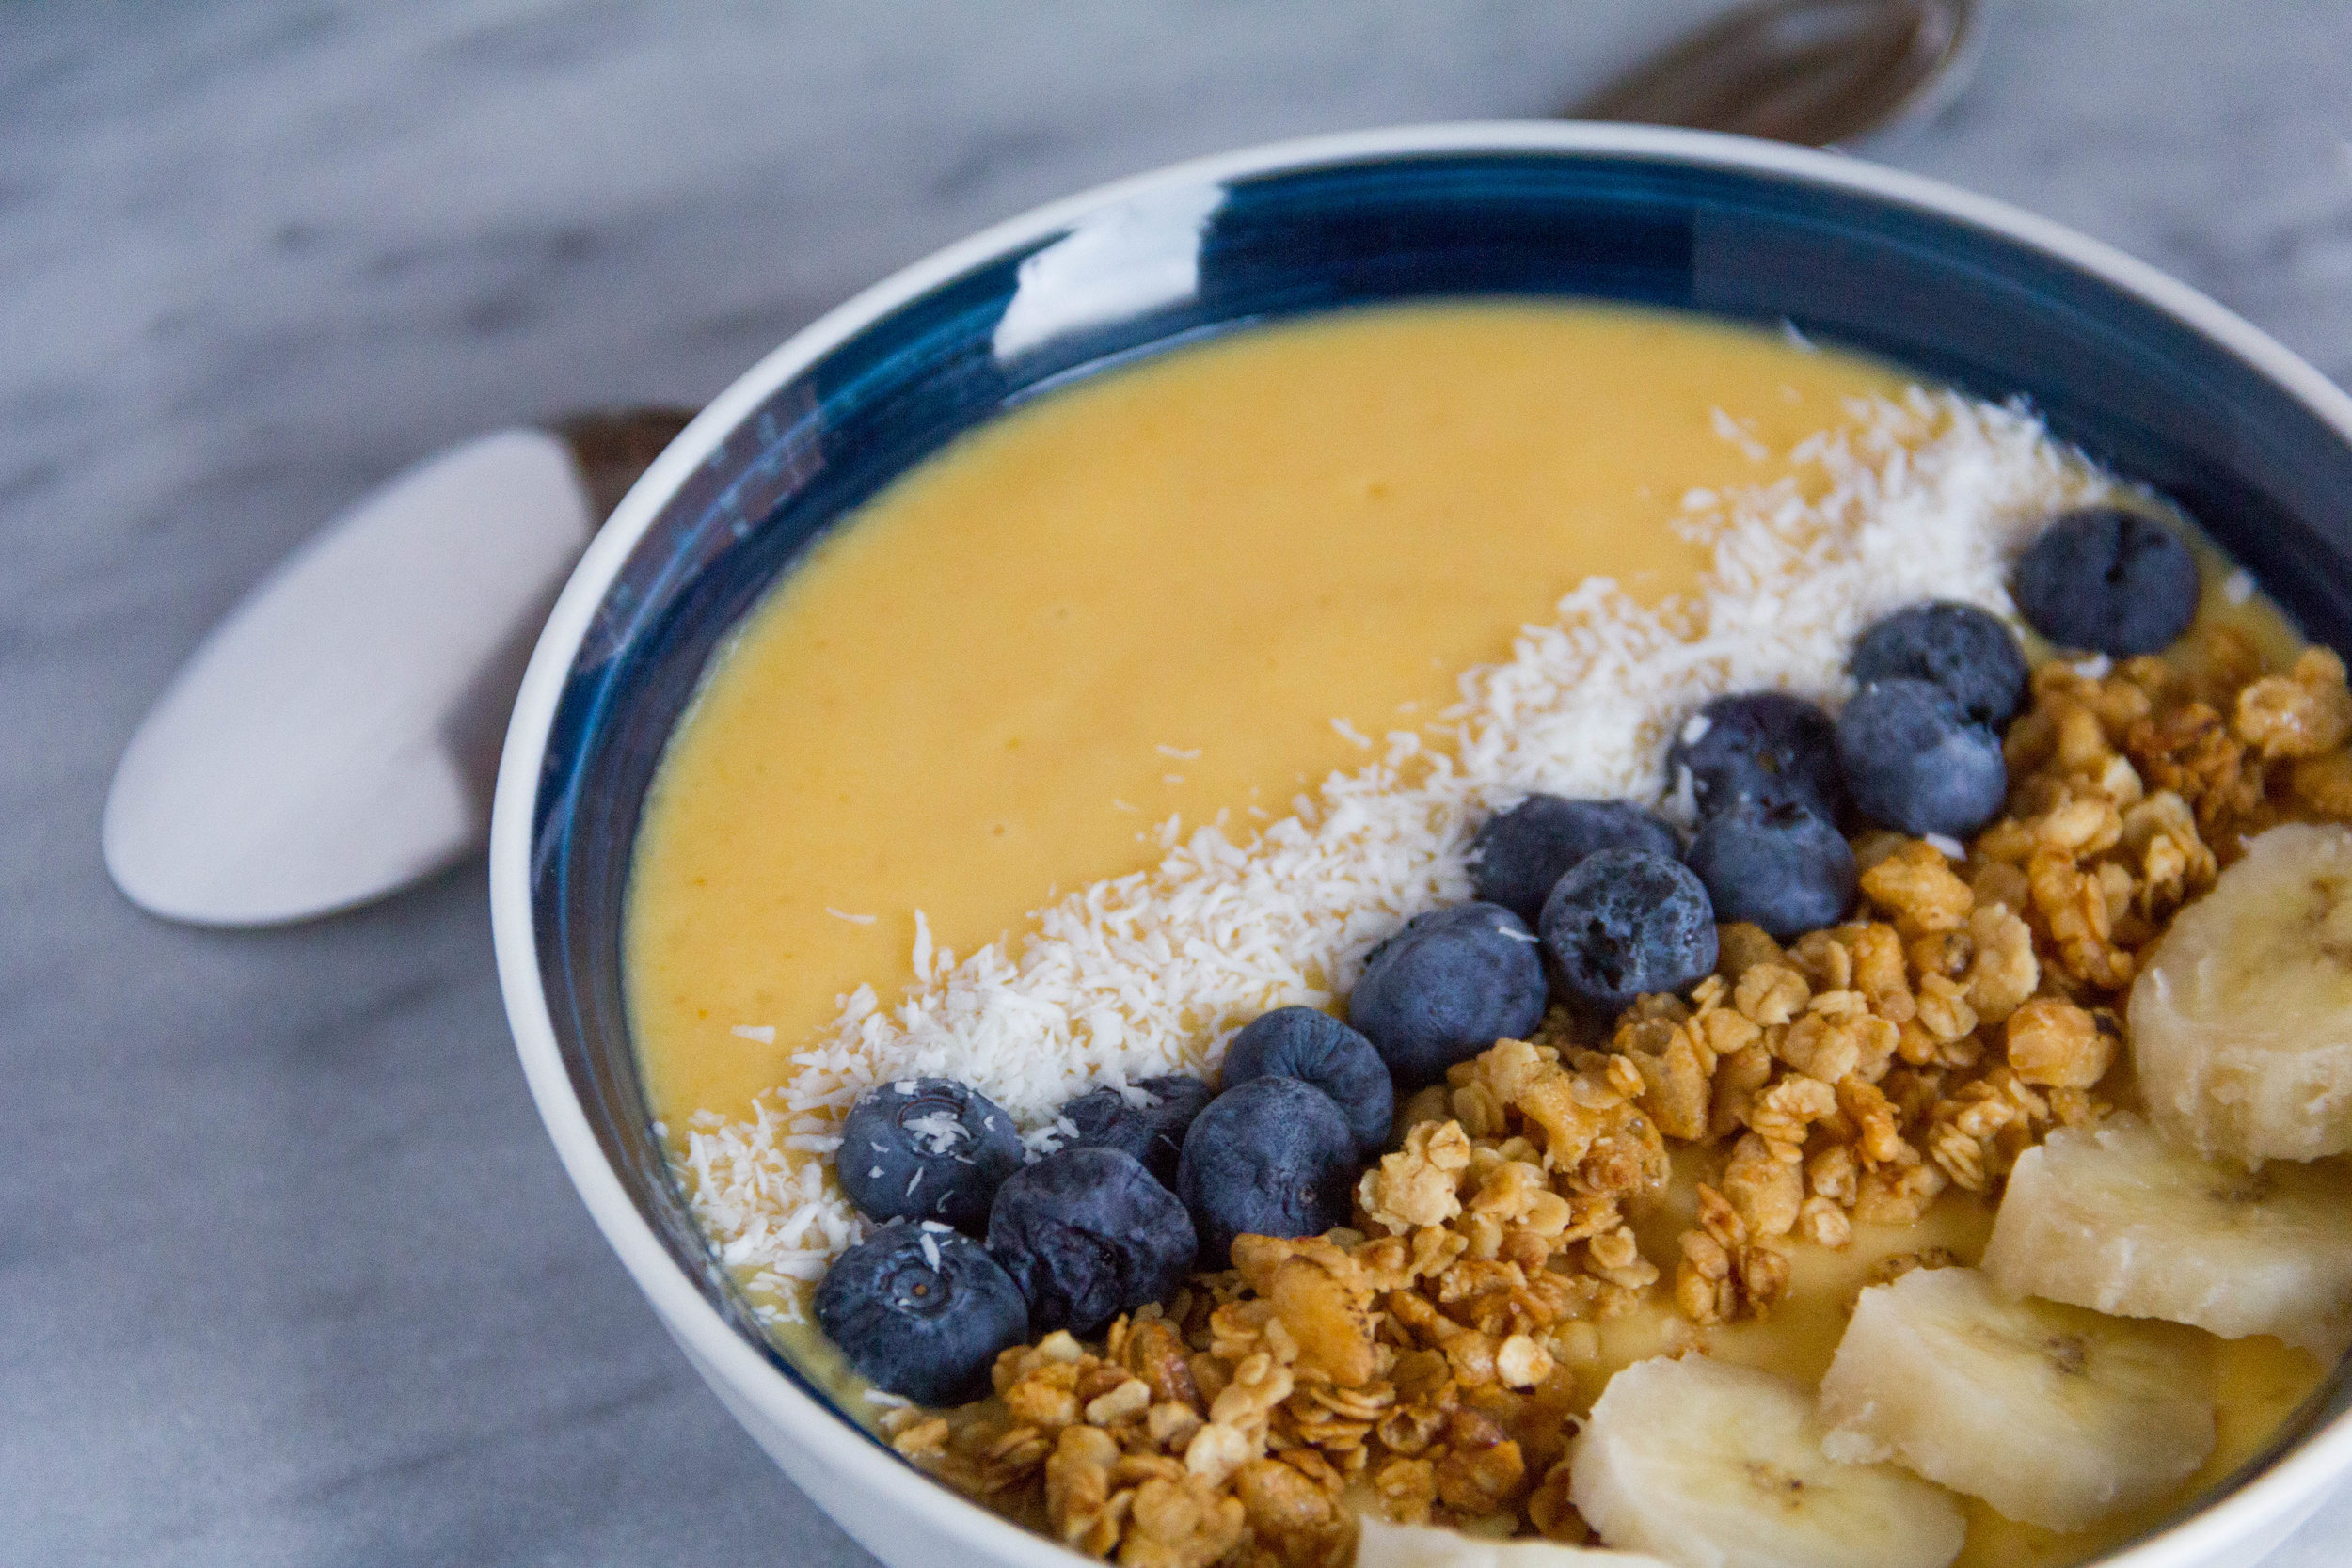 Pumpkin Mango Smoothie Bowl... topped with very ripe banana, homemade gluten free granola, fresh blueberries, and unsweetened coconut flakes!